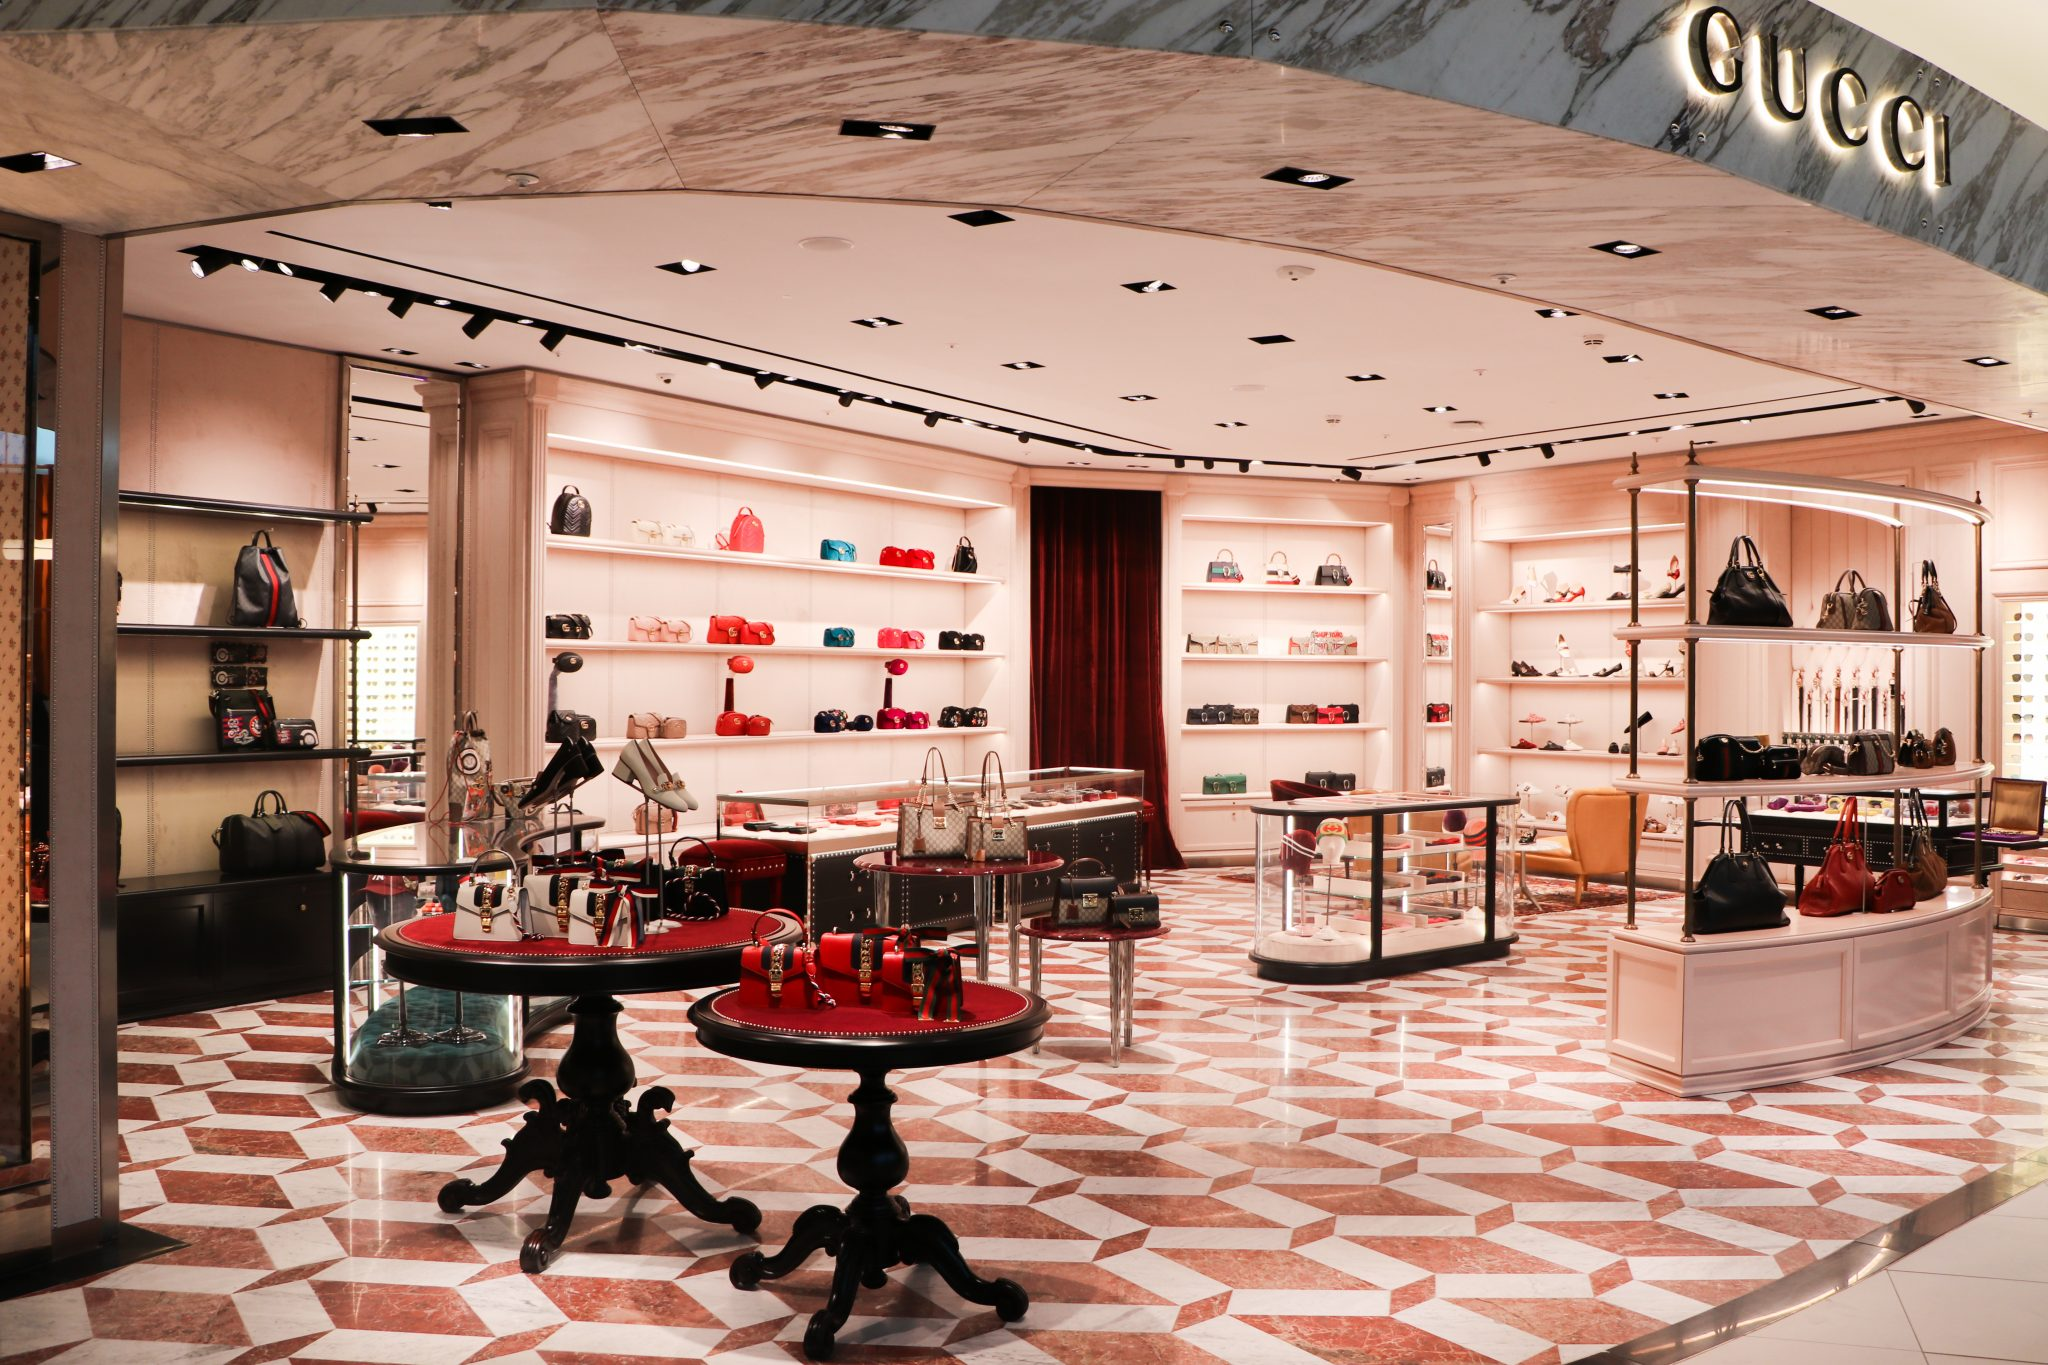 """be908ed622 Sam Watts, Selfridges Birmingham general manager, said: """"We're constantly  evolving, finding new and timeless brands for our customers to discover and  the ..."""